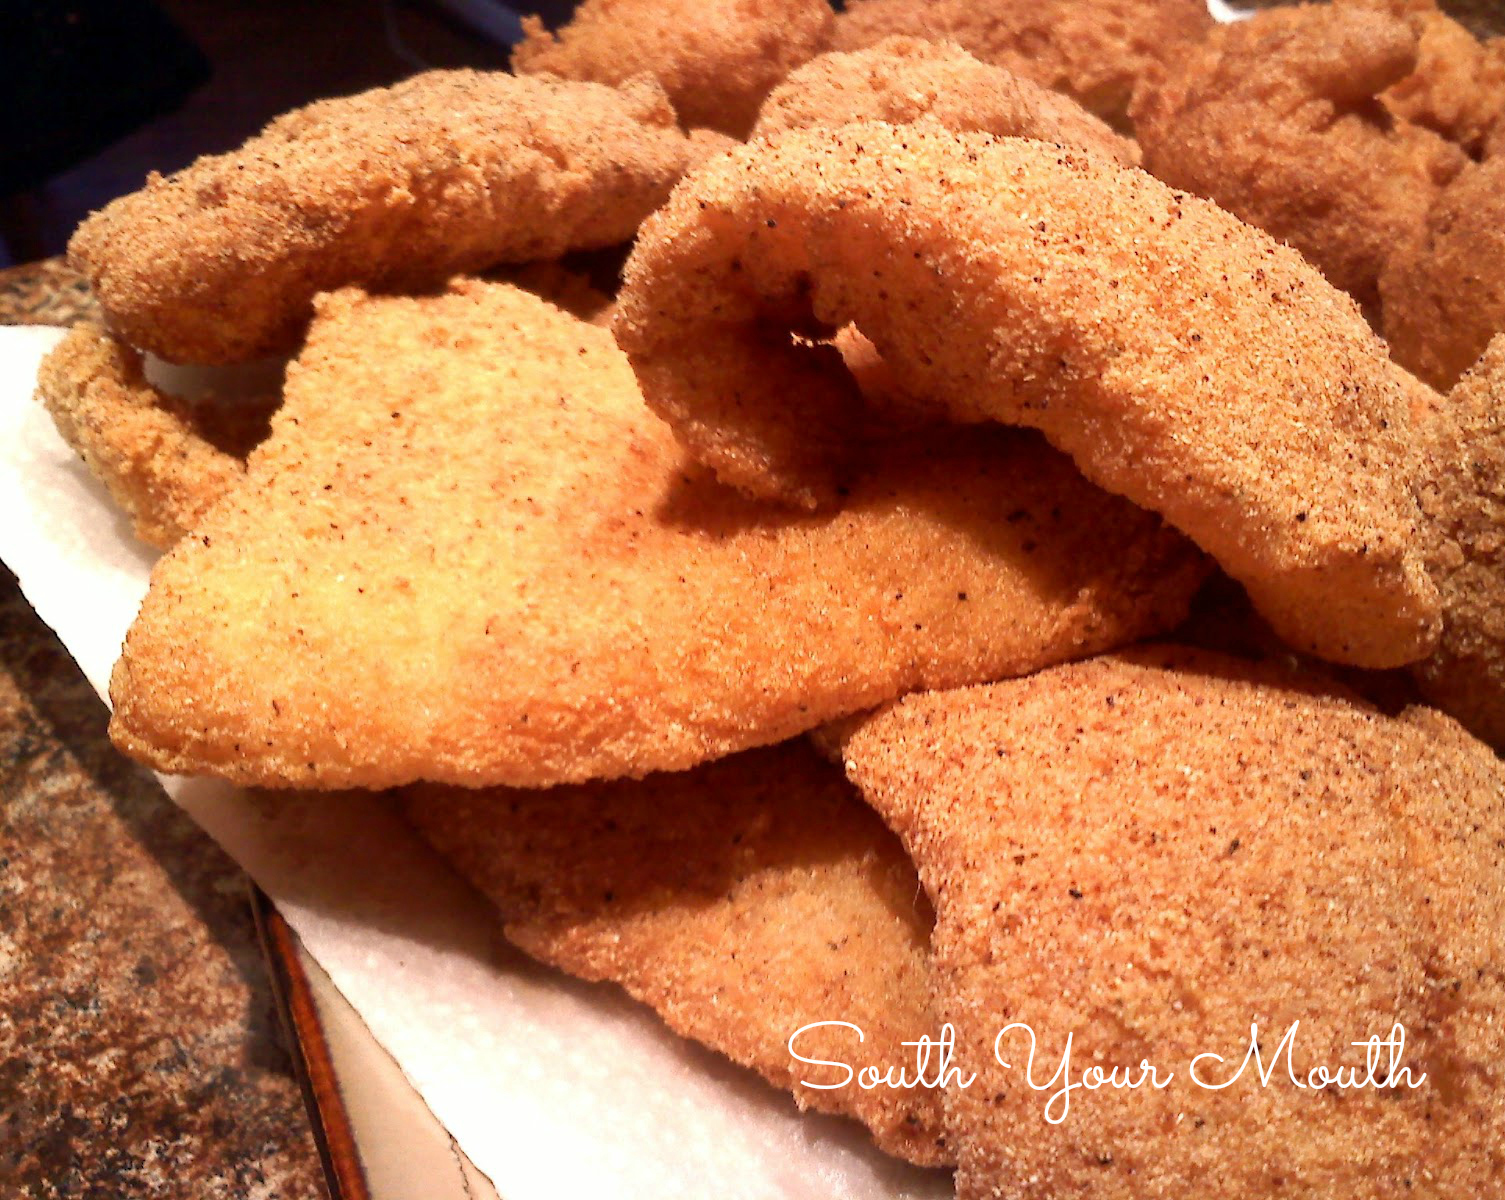 South Your Mouth: Southern Fried Fish